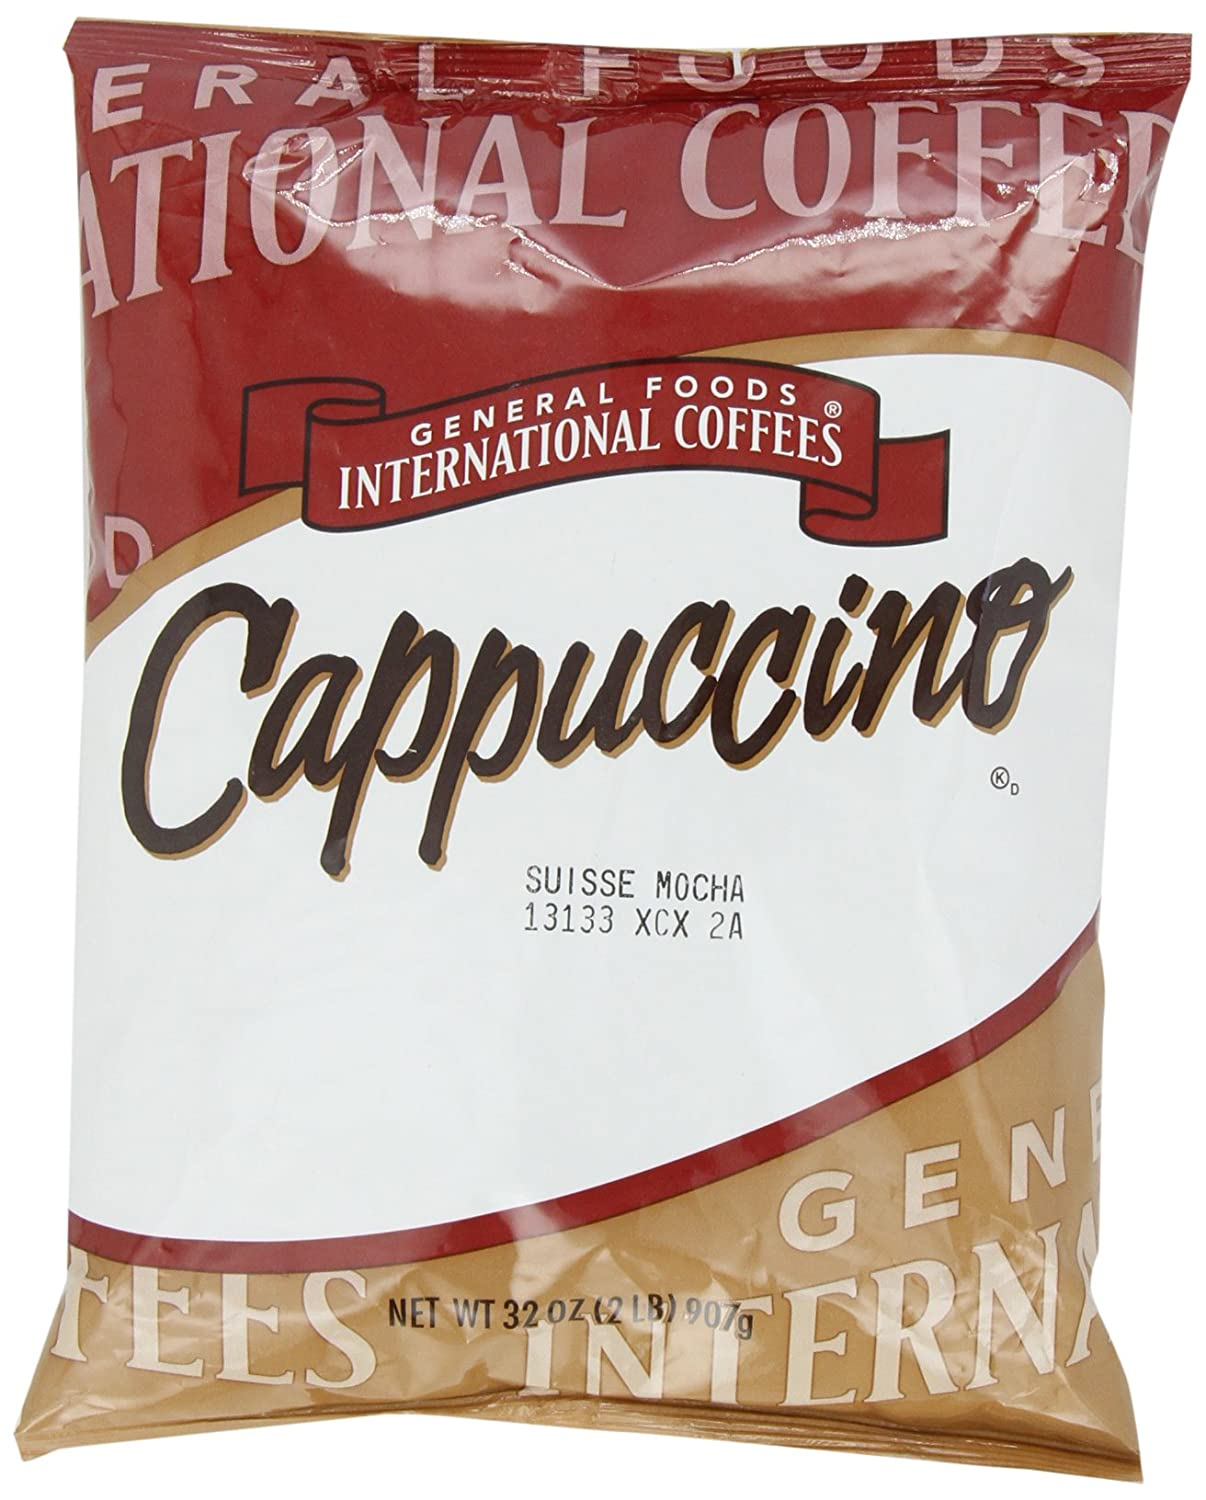 General Foods Suisse Mocha Instant Coffee Mix (2lb Bags, Pack of 6)